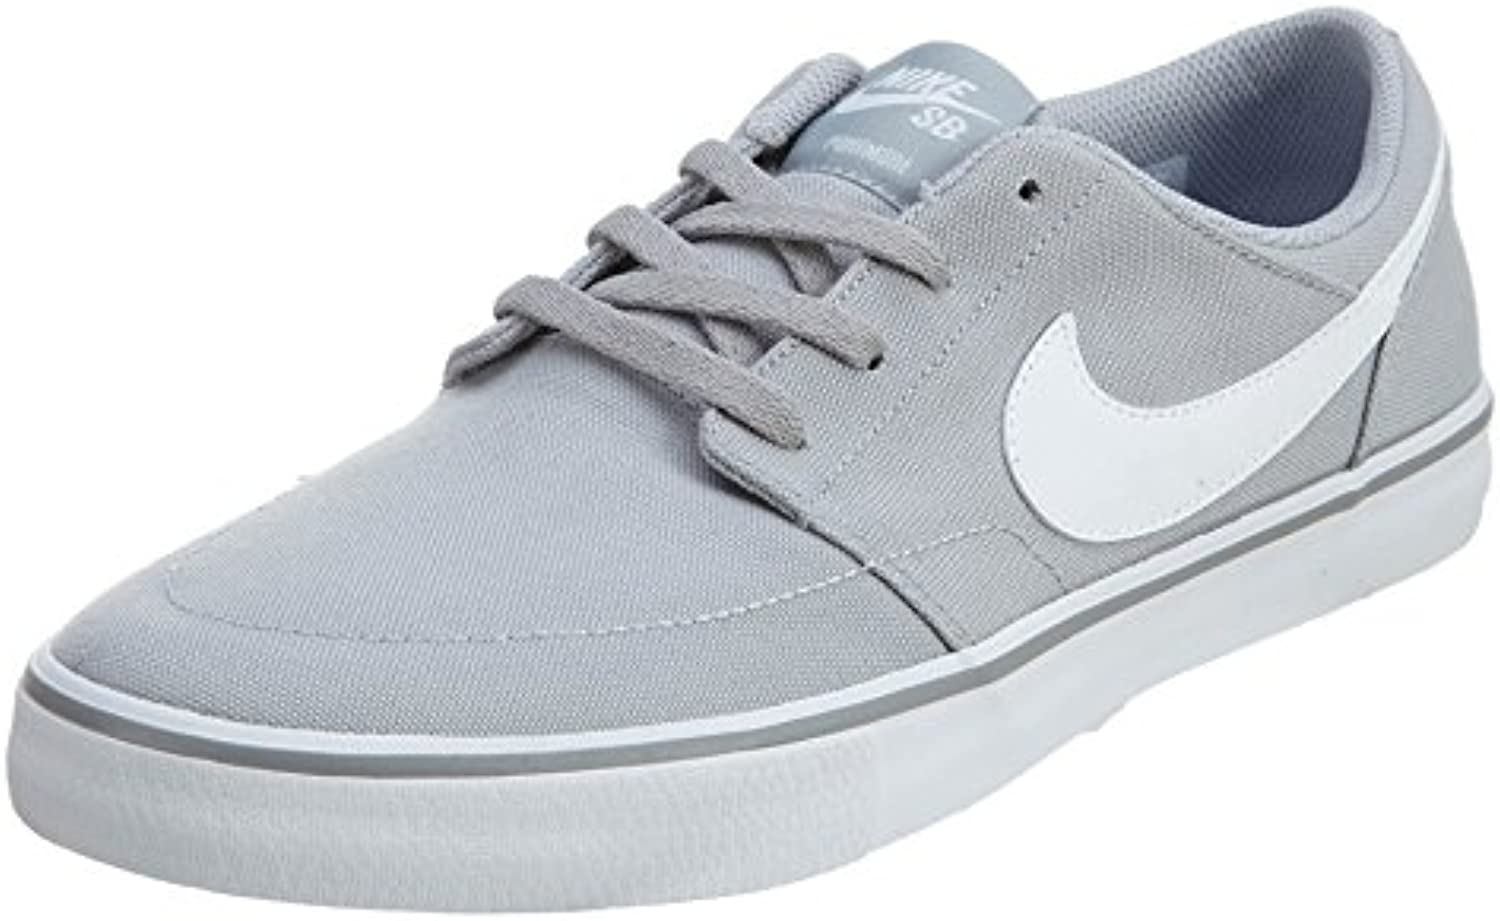 Nike SB Portmore II Solar Canvas Wolf Grey/White/Black Men's Skate Shoes